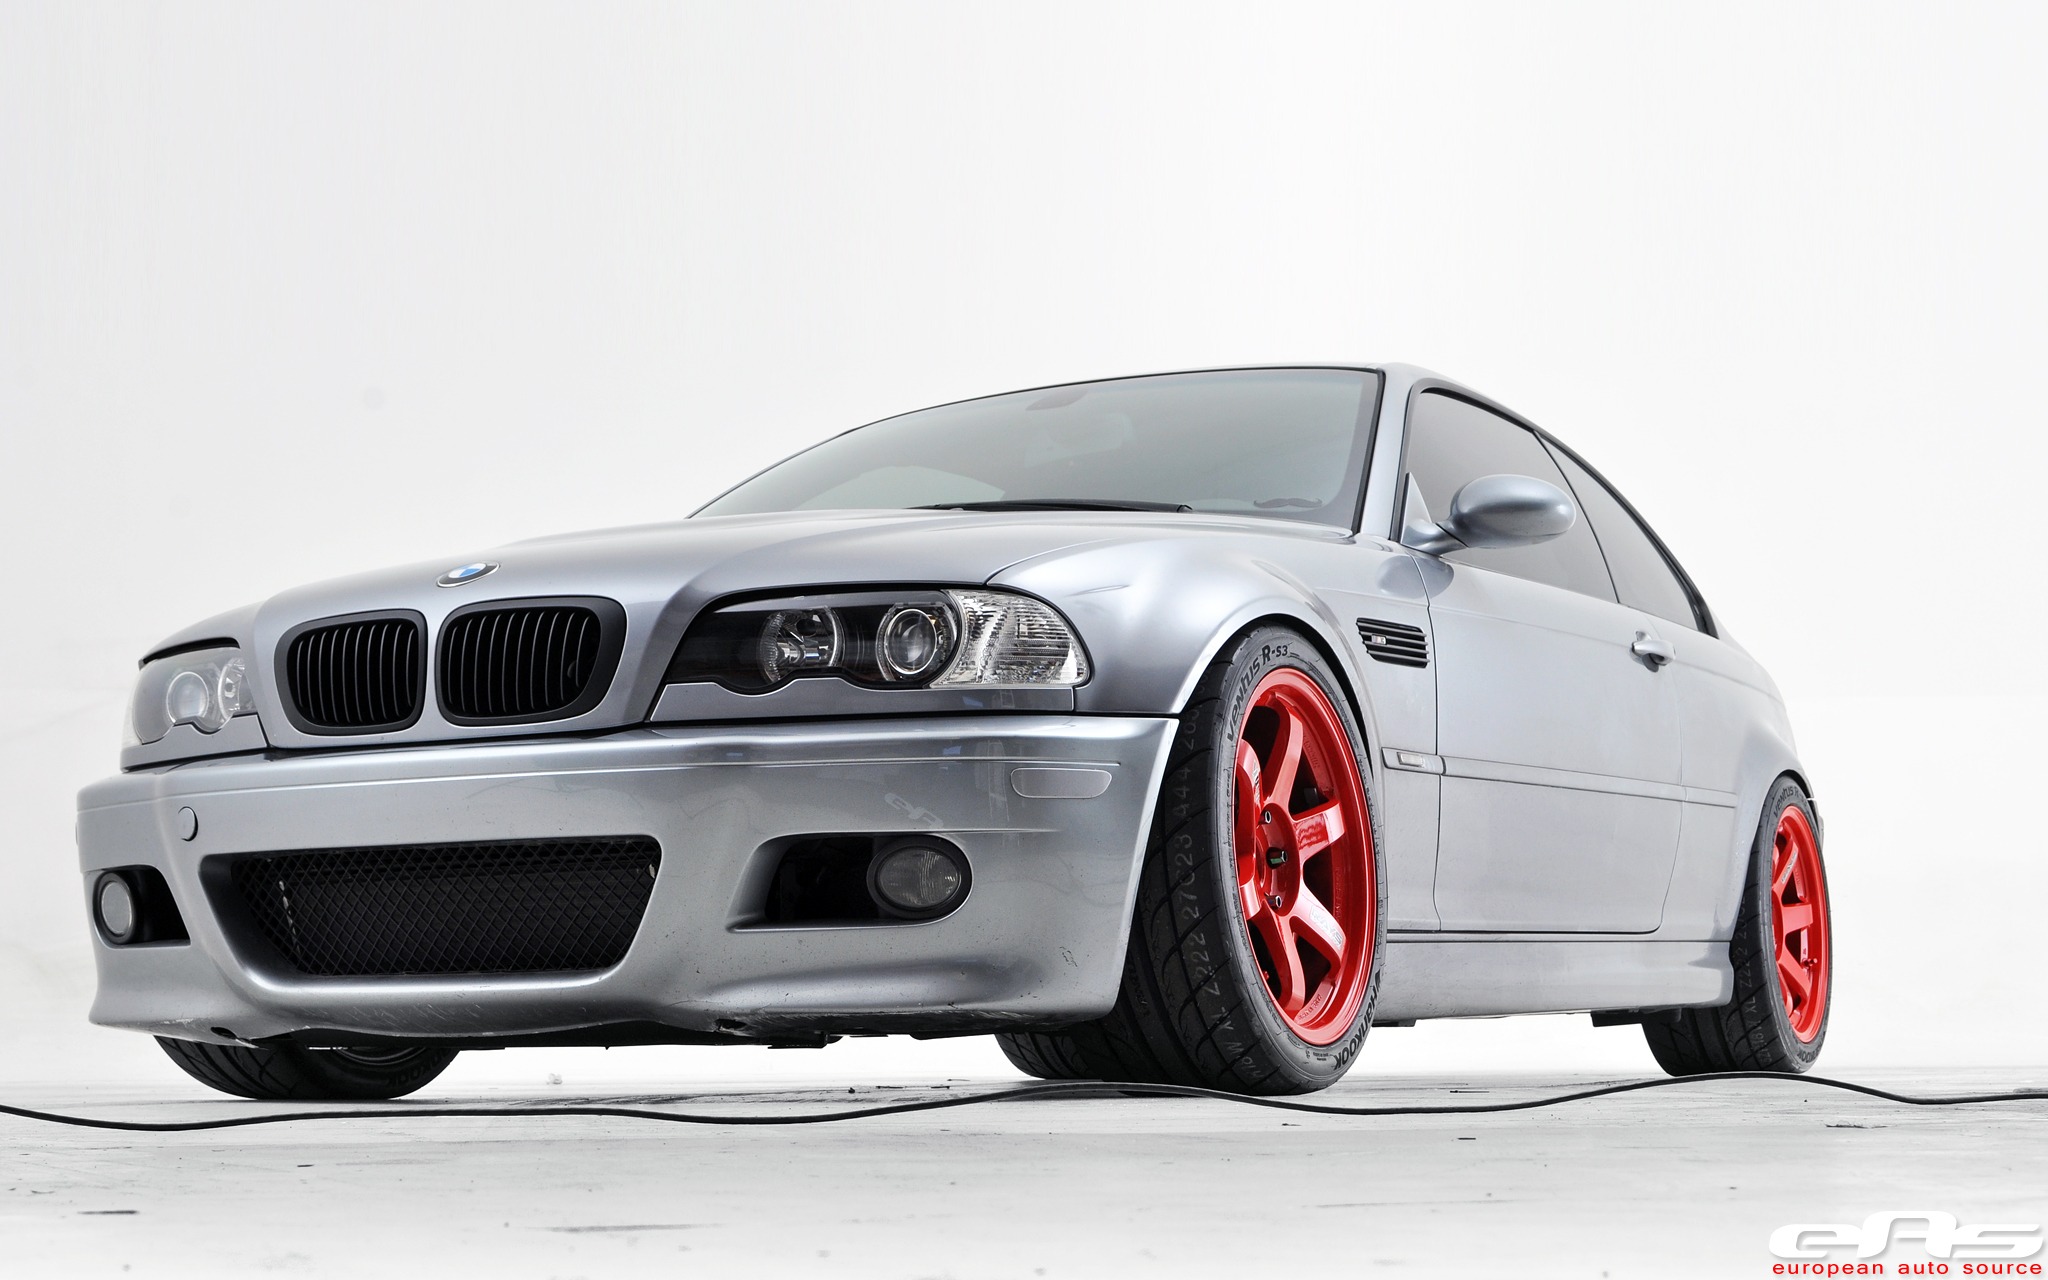 Red Te37sls Mounted On Silver Gray E46 M3 Bmw Performance Parts Services